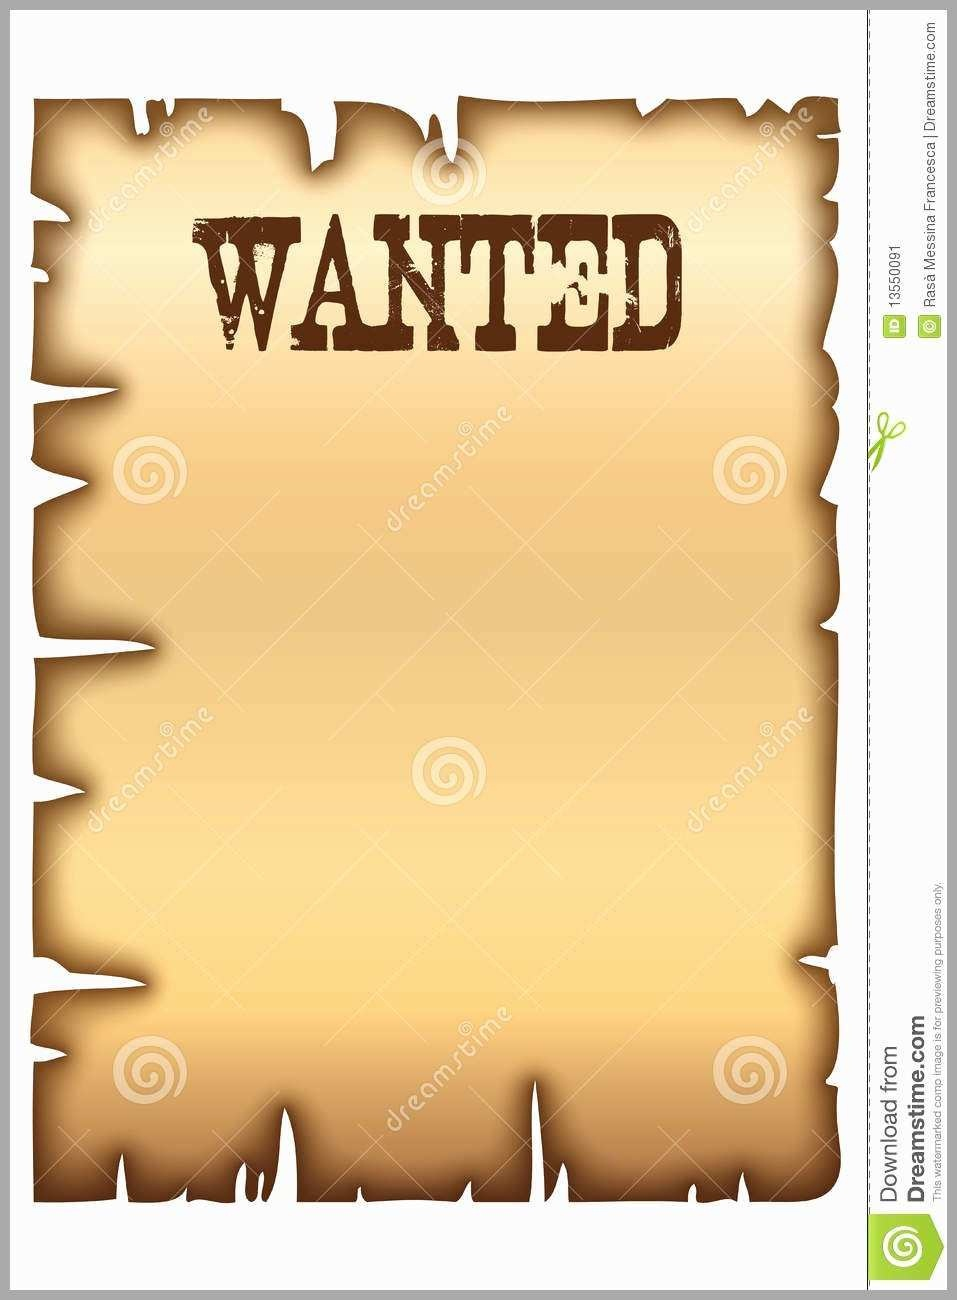 Beaufiful Wanted Poster Invitation Template Pictures. Wanted Poster - Free Printable Wanted Poster Invitations